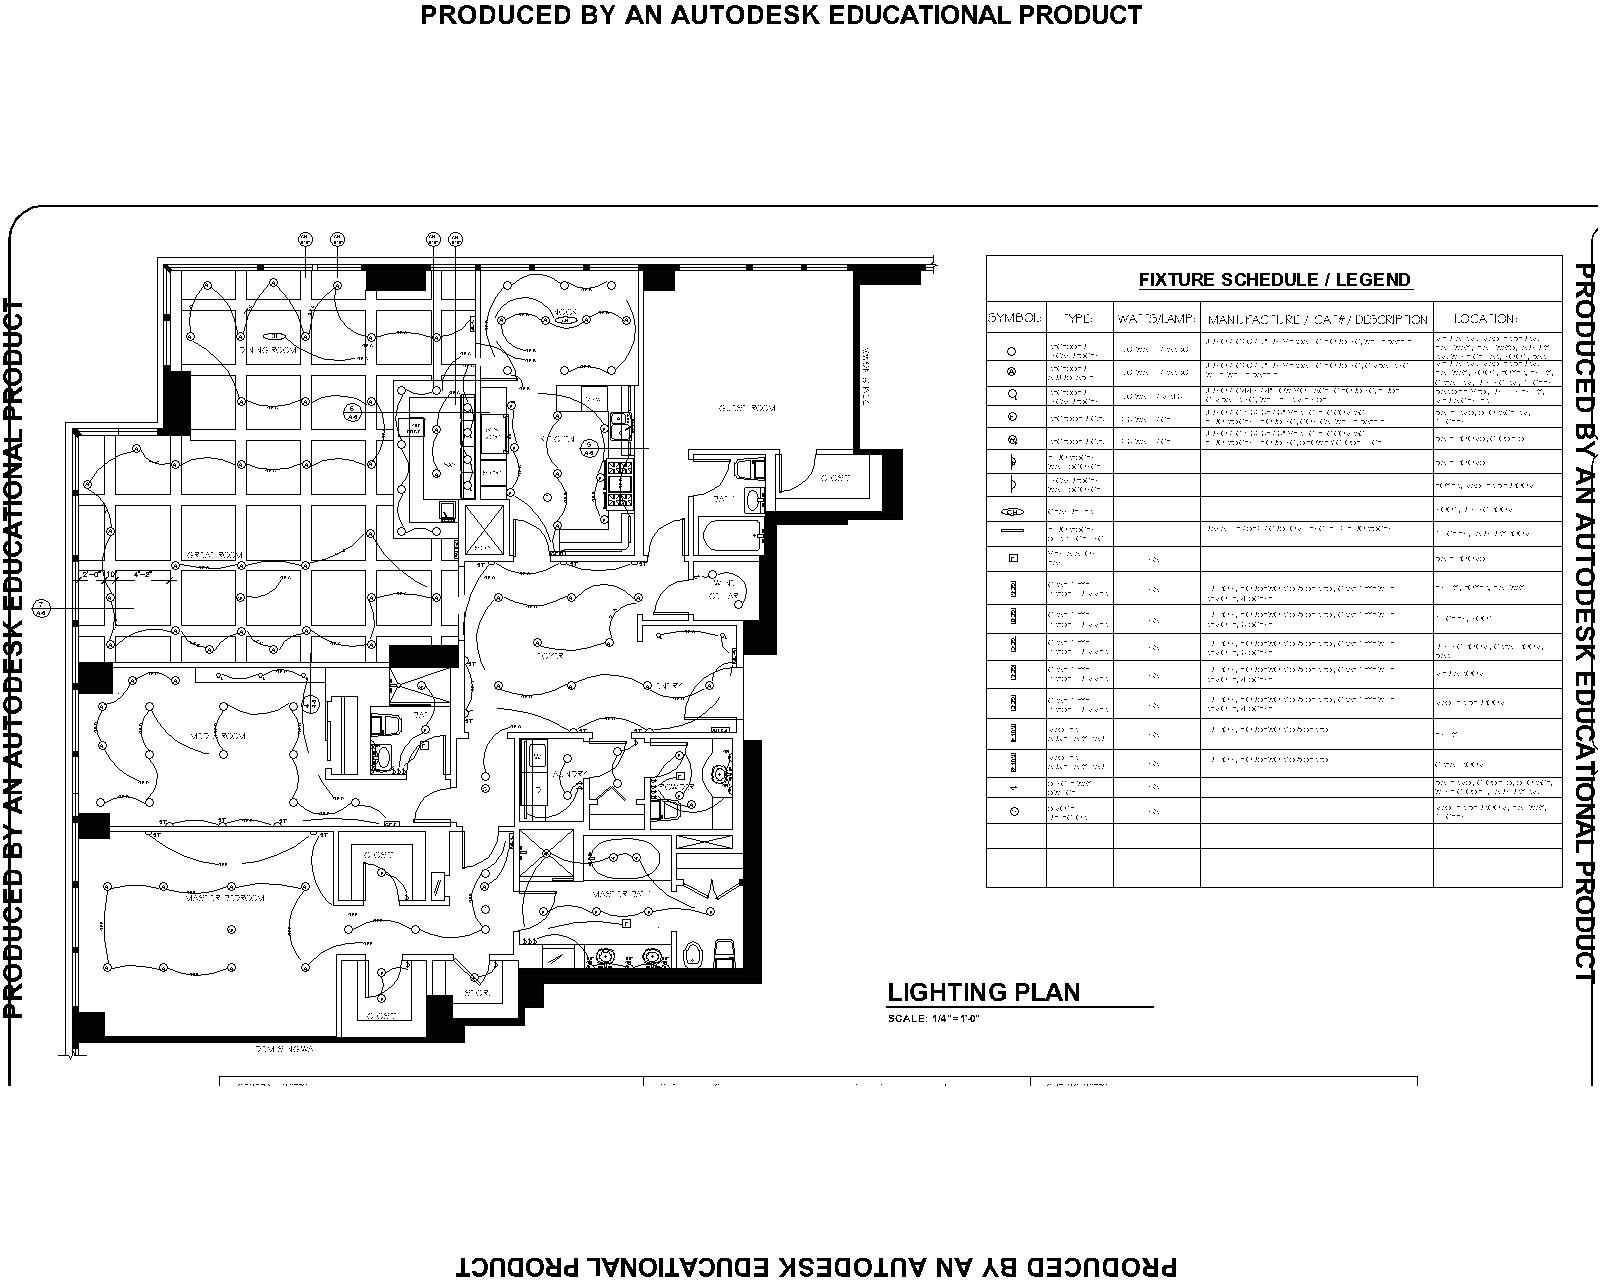 Zf10969 together with Schematic Symbol For Sink likewise House Plan Legend moreover 14040 159 in addition O O O. on residential electrical symbols legend